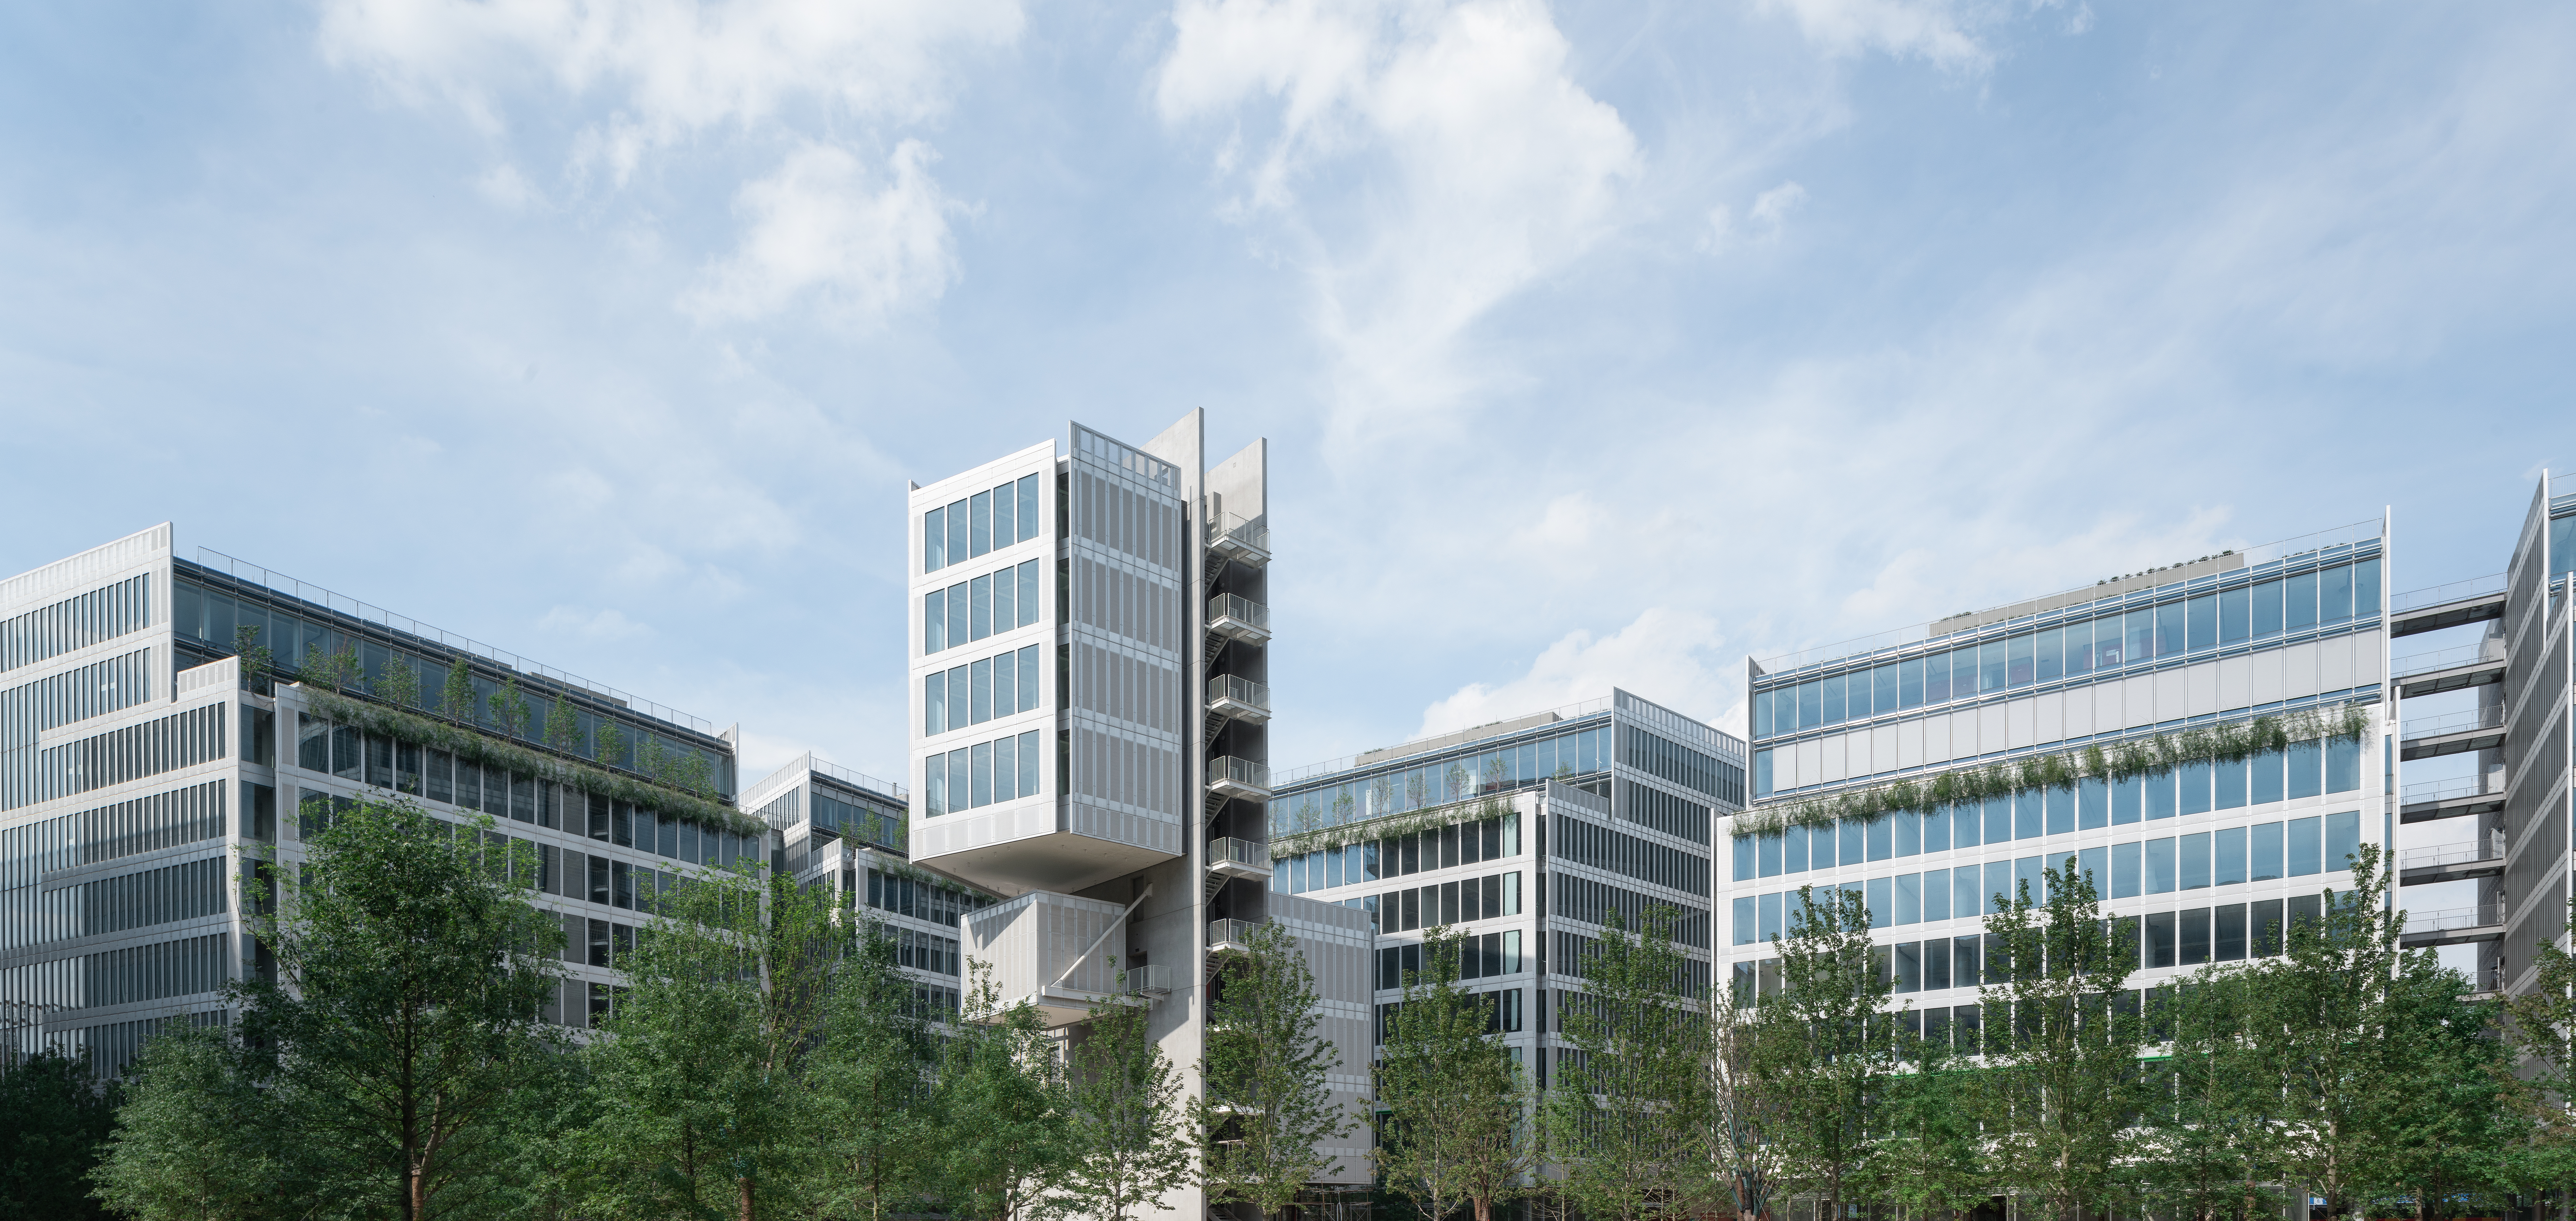 Panoramic view of JNBY Group's headquarter in Hangzhou, China, designed by Renzo Piano